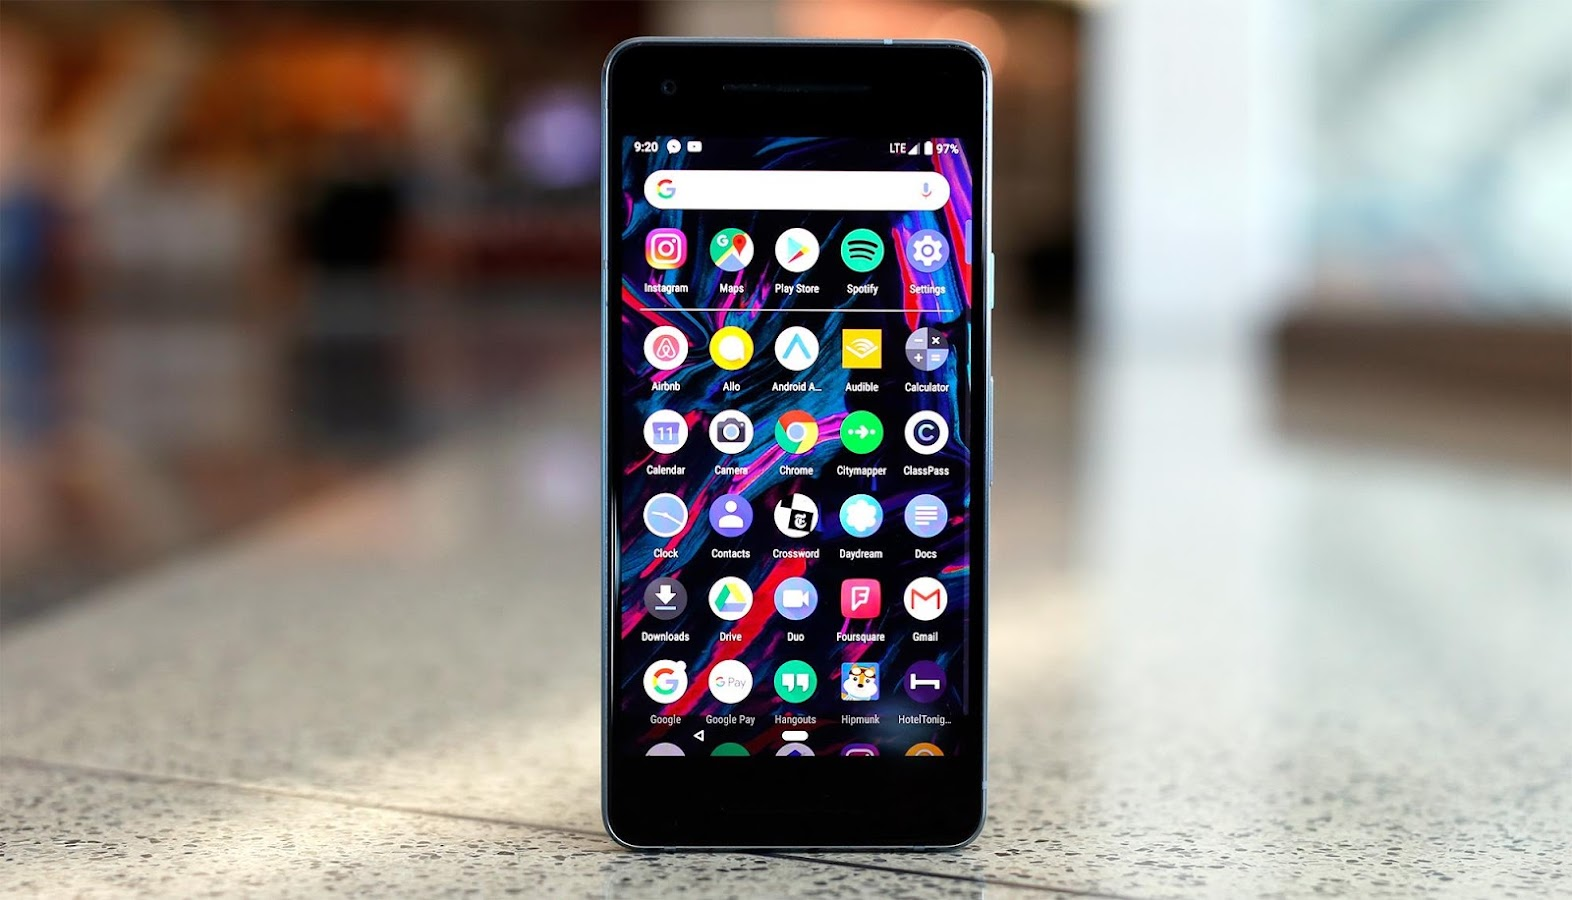 Pie Launcher for Android P 9 0 1 3 APK Download - Android